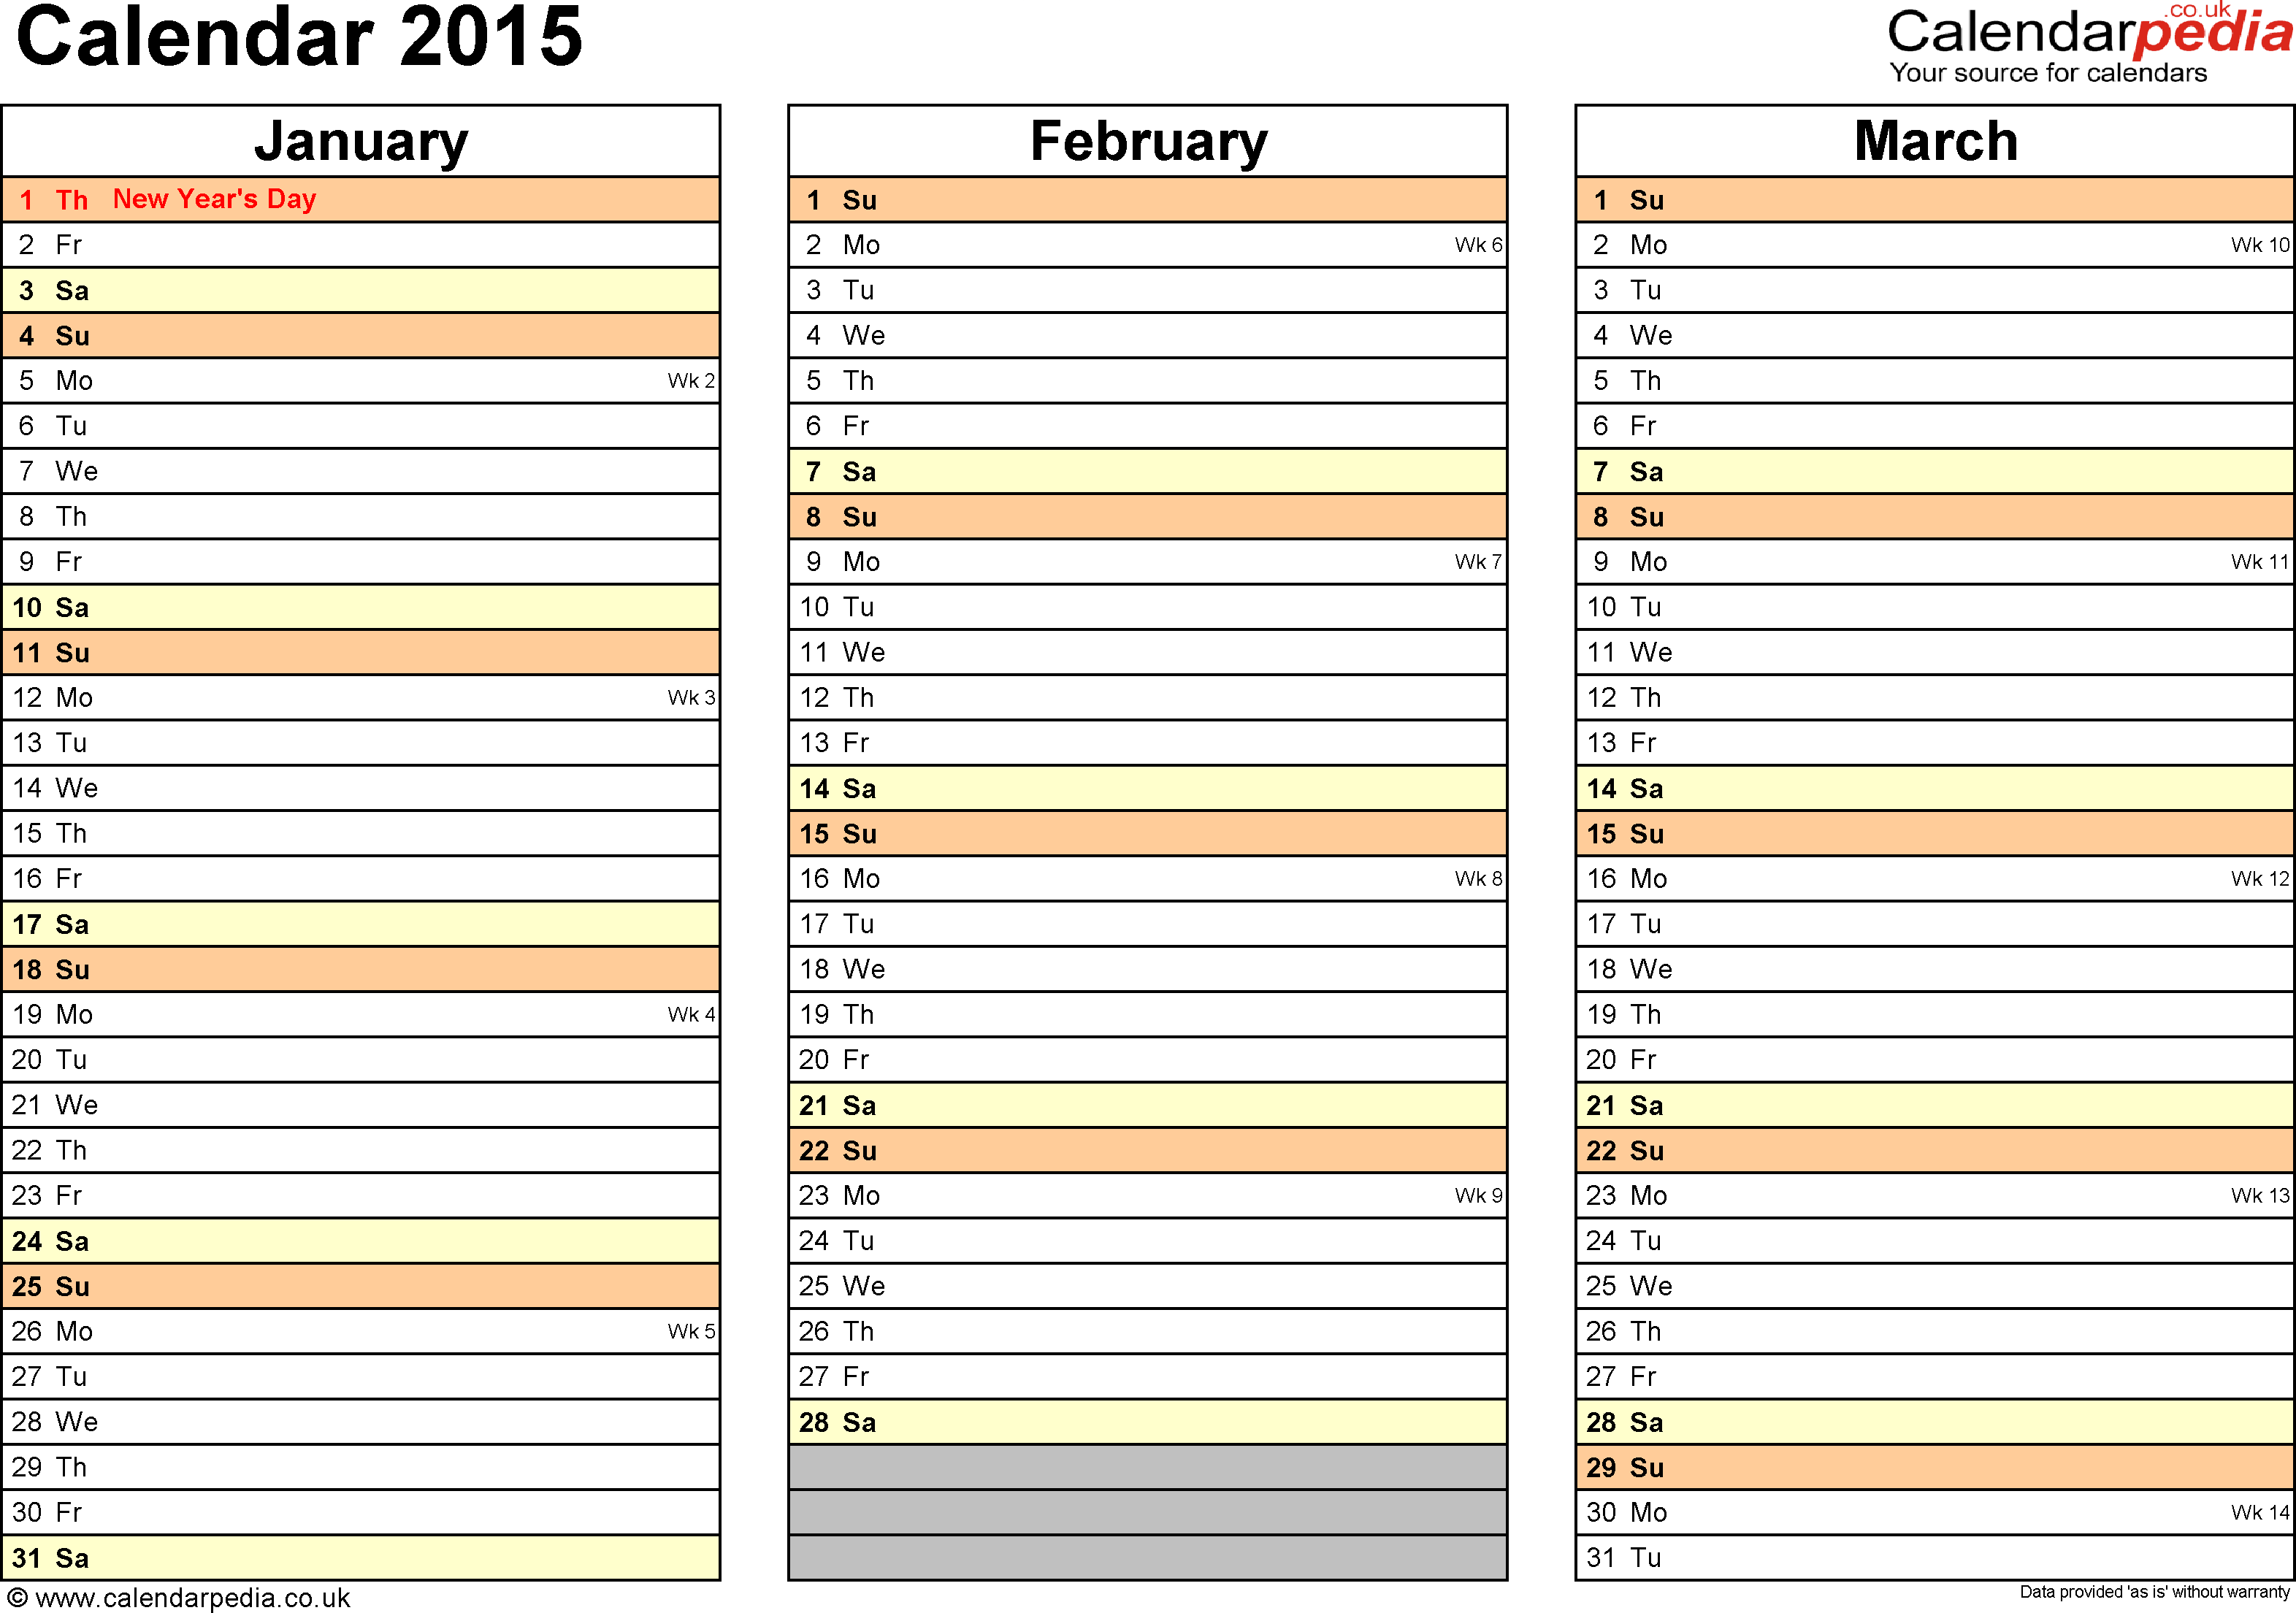 calendar uk printable word templates template 5 yearly calendar 2015 as word template landscape orientation 4 pages